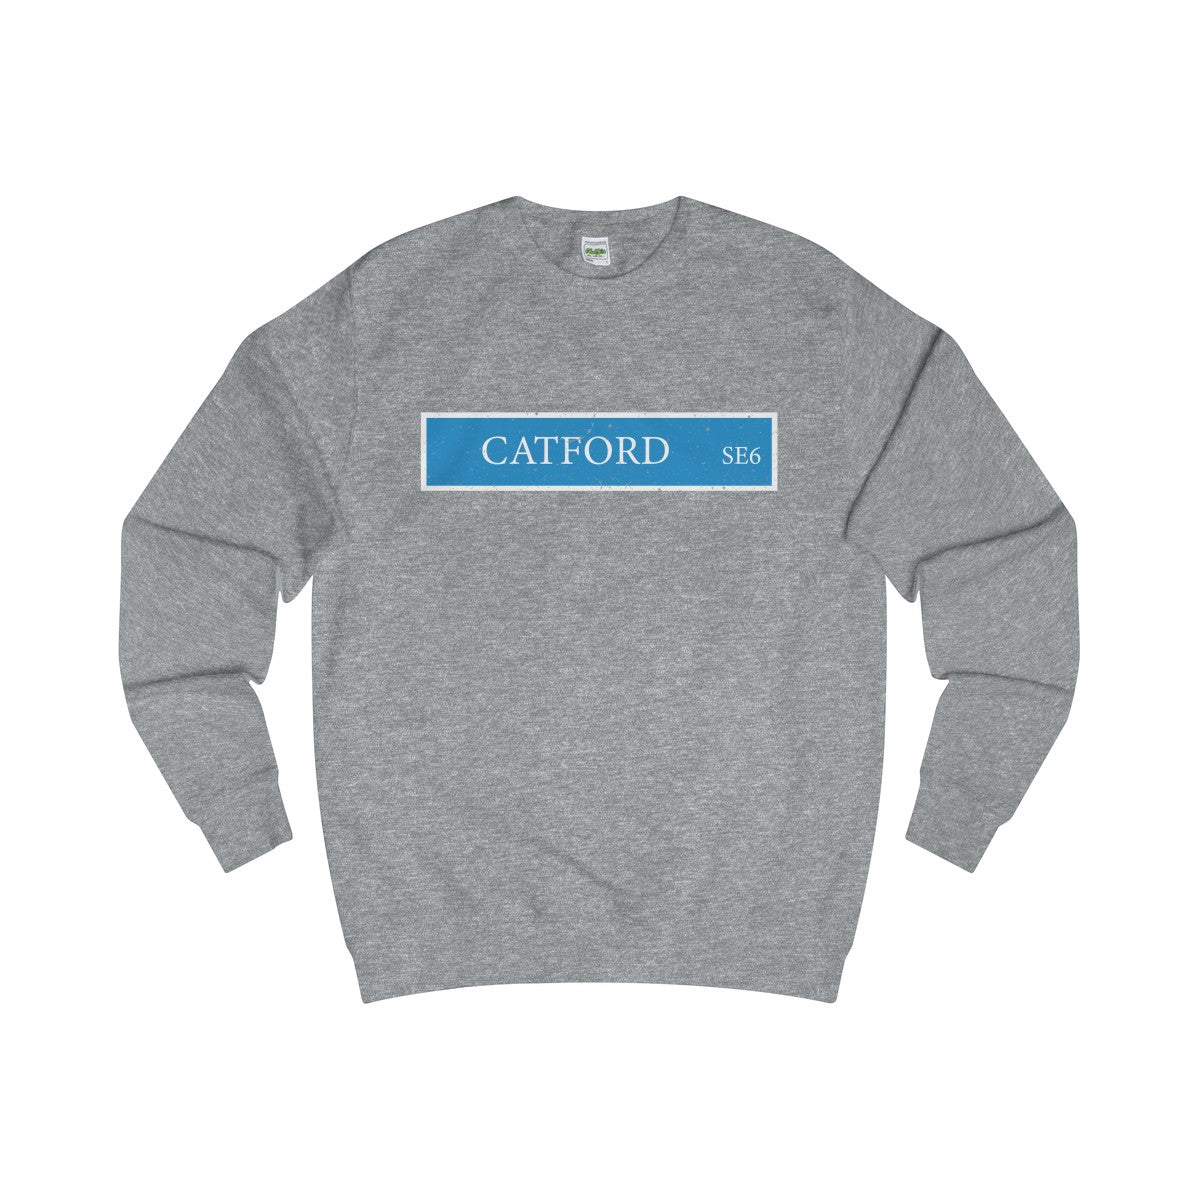 Catford Road Sign SE6 Sweater